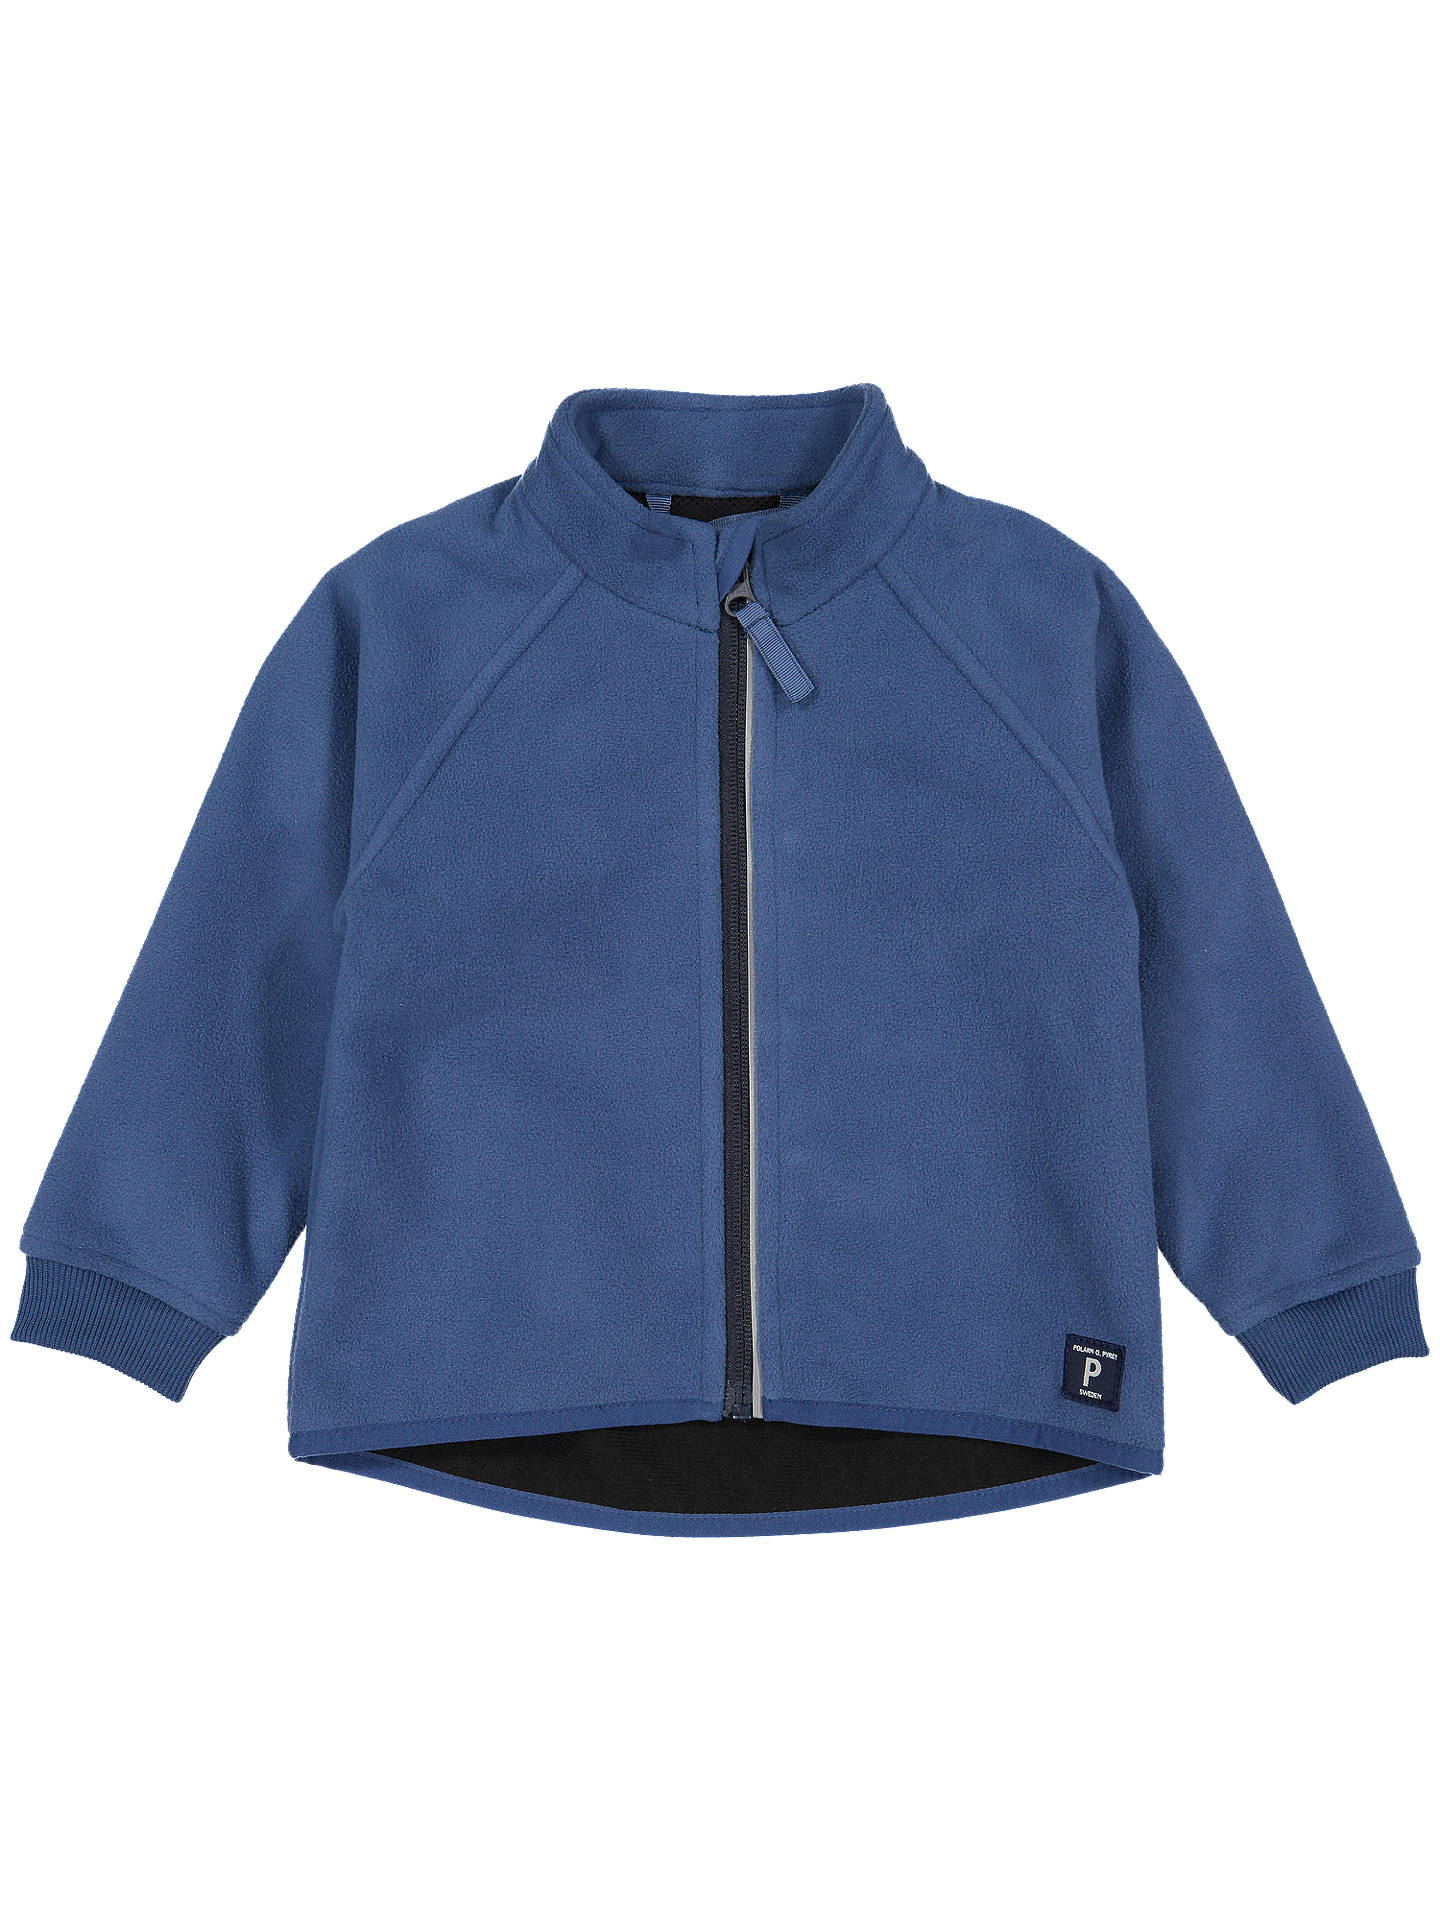 BuyPolarn O. Pyret Baby Waterproof Fleece Jacket, Blue, 6-9 months Online at johnlewis.com